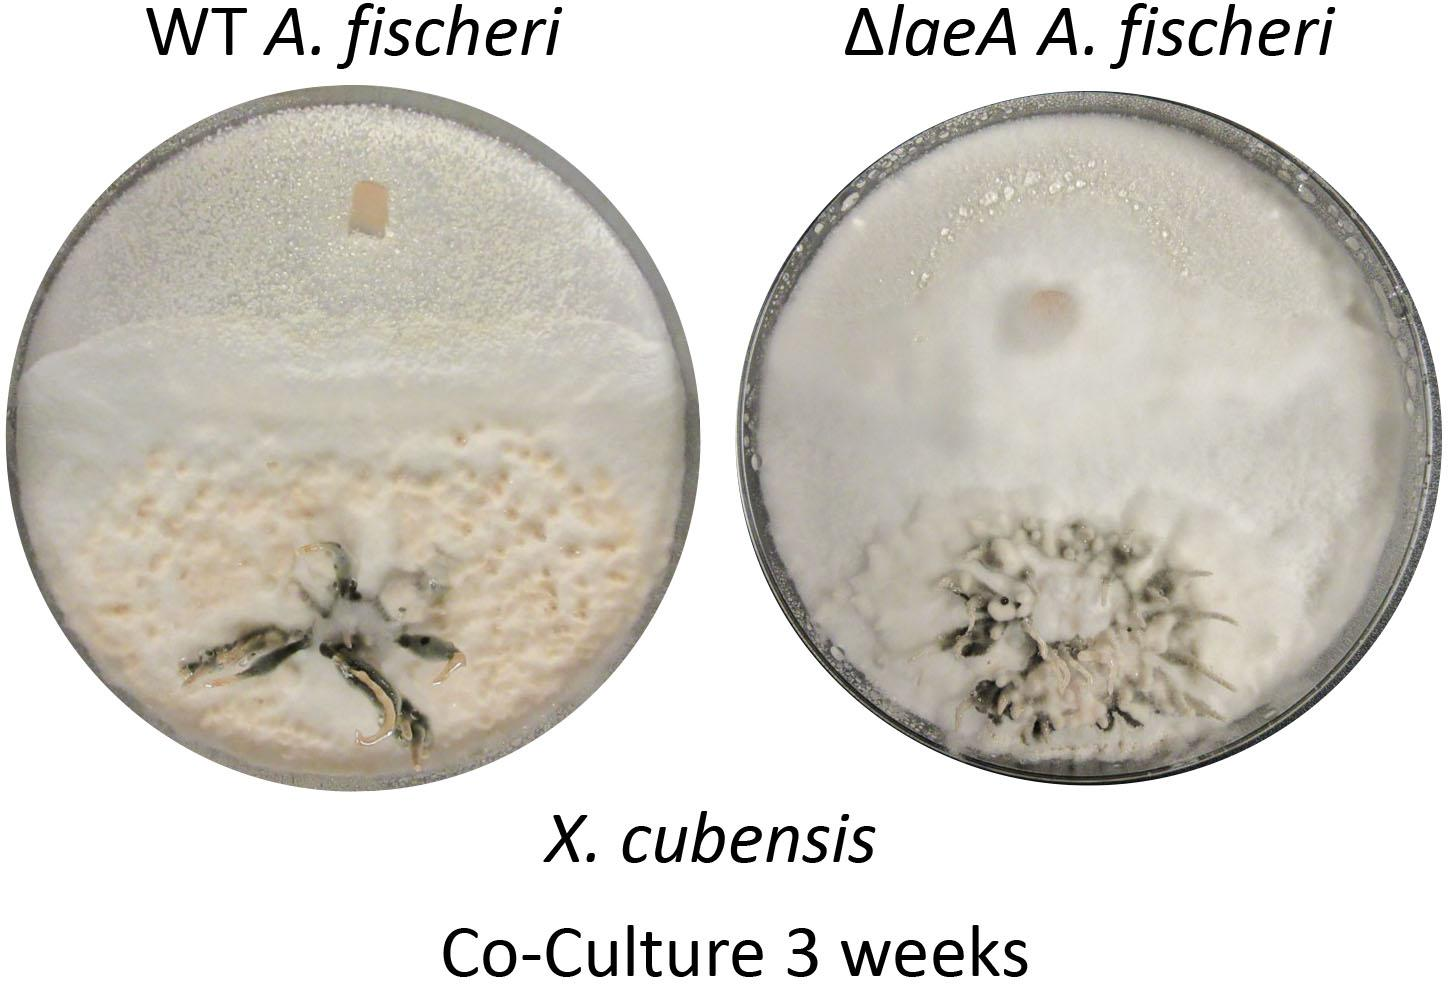 Frontiers | Mapping the Fungal Battlefield: Using in situ Chemistry